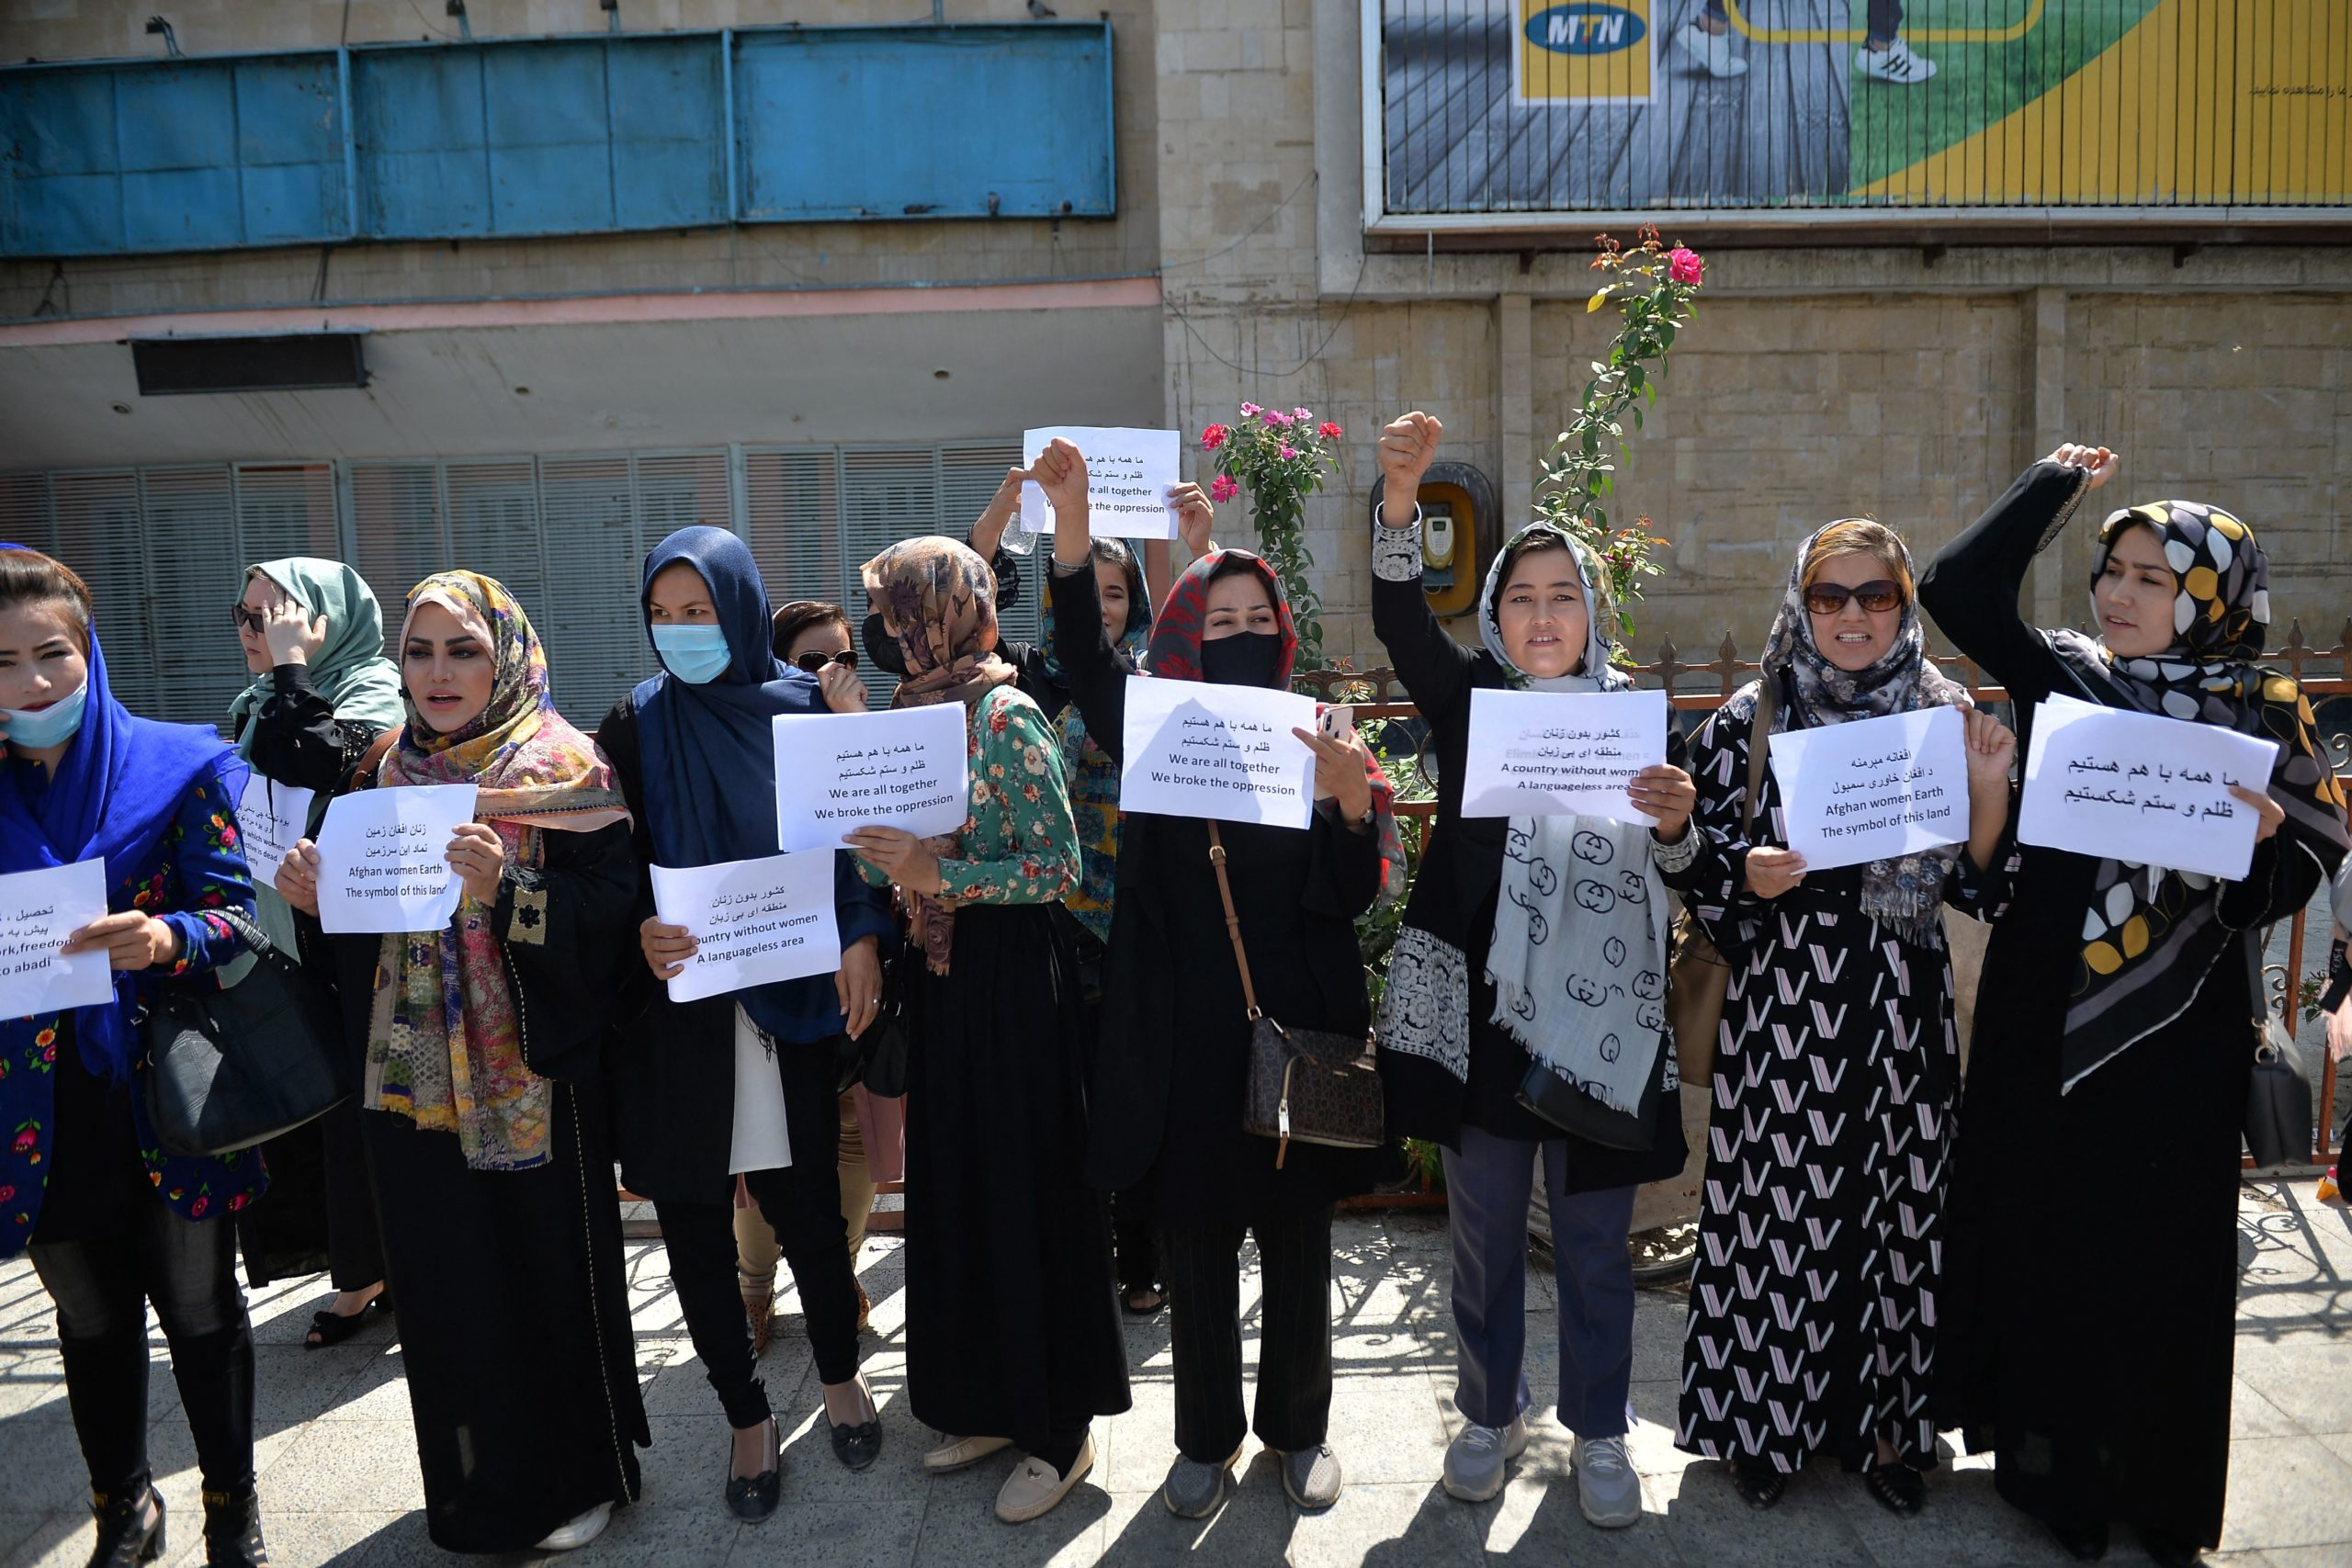 Afghan women take part in a protest march for their rights under the Taliban rule in the downtown area of Kabul on September 3, 2021. (Photo by HOSHANG HASHIMI/AFP via Getty Images)